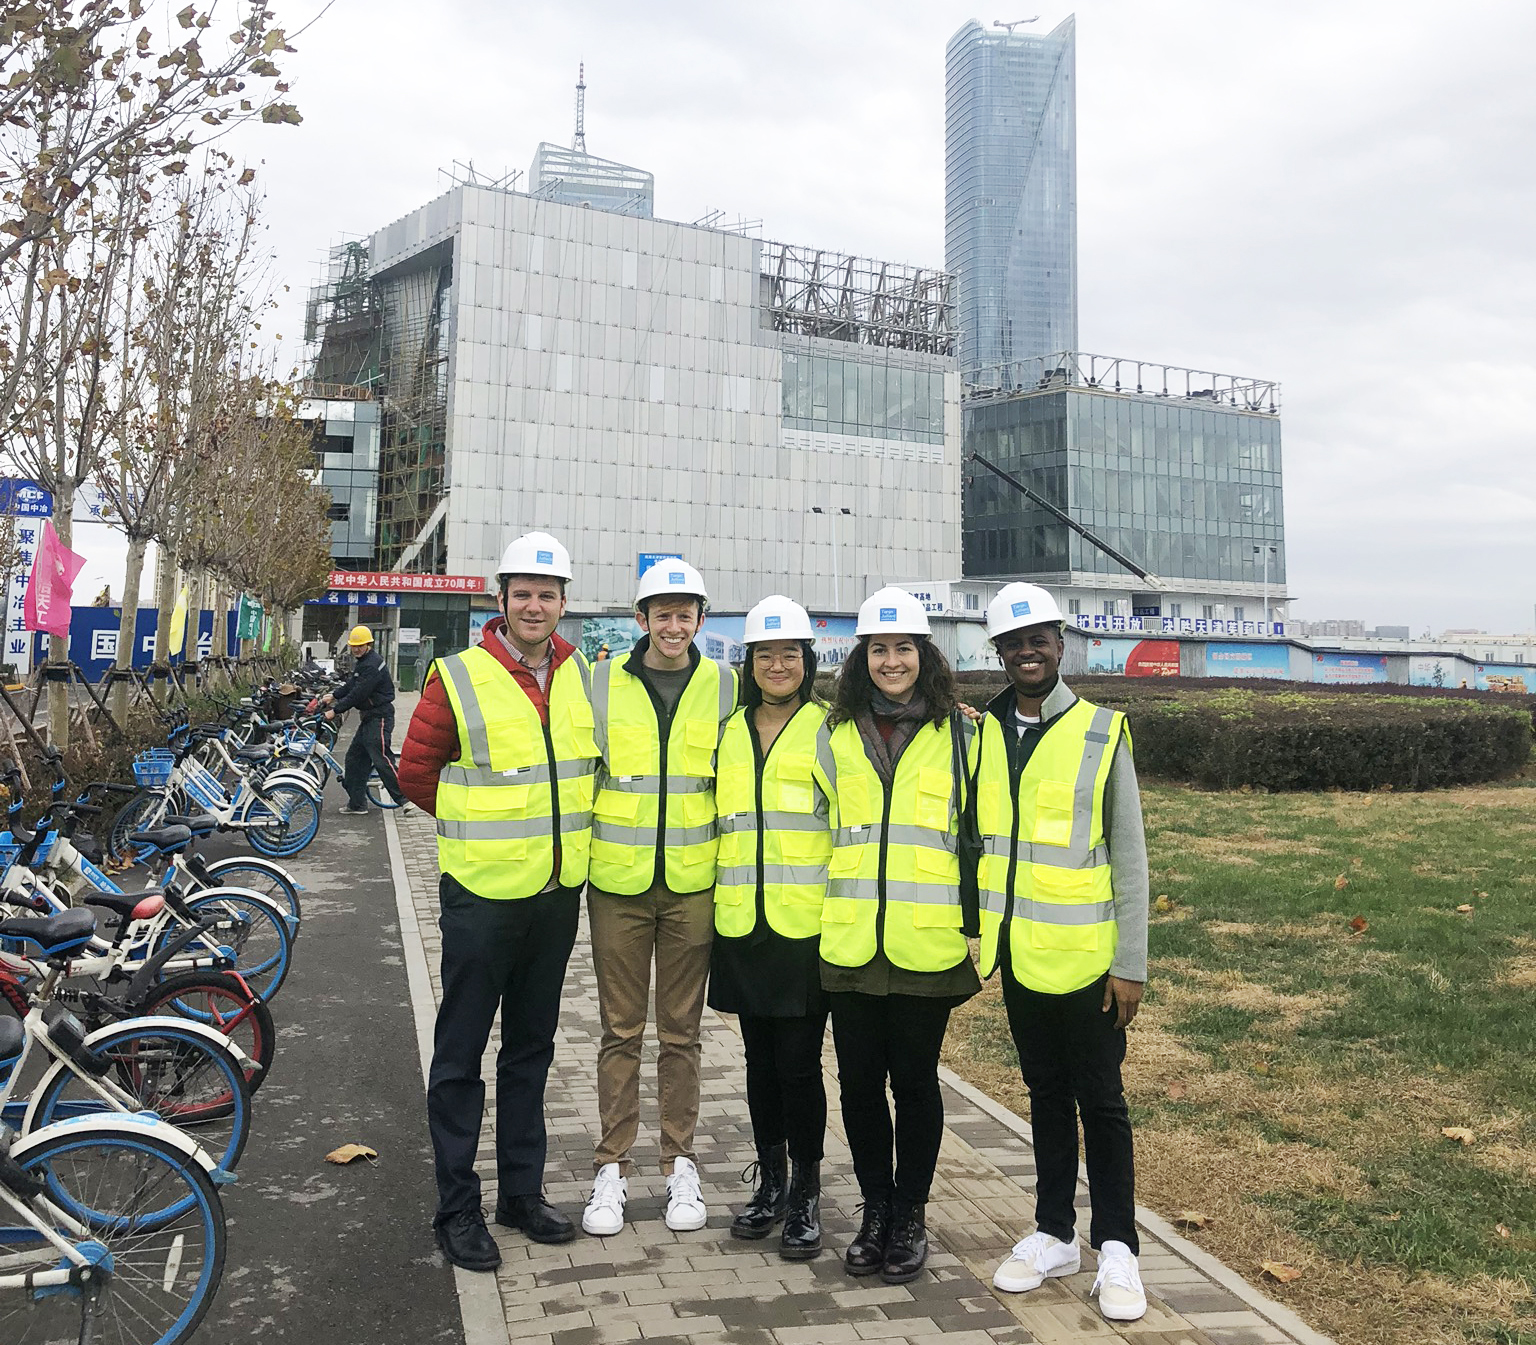 A construction tour of The Tianjin Juilliard School building with Dean Meyer and Juilliard students.  Photo credit: Bethany Marshall